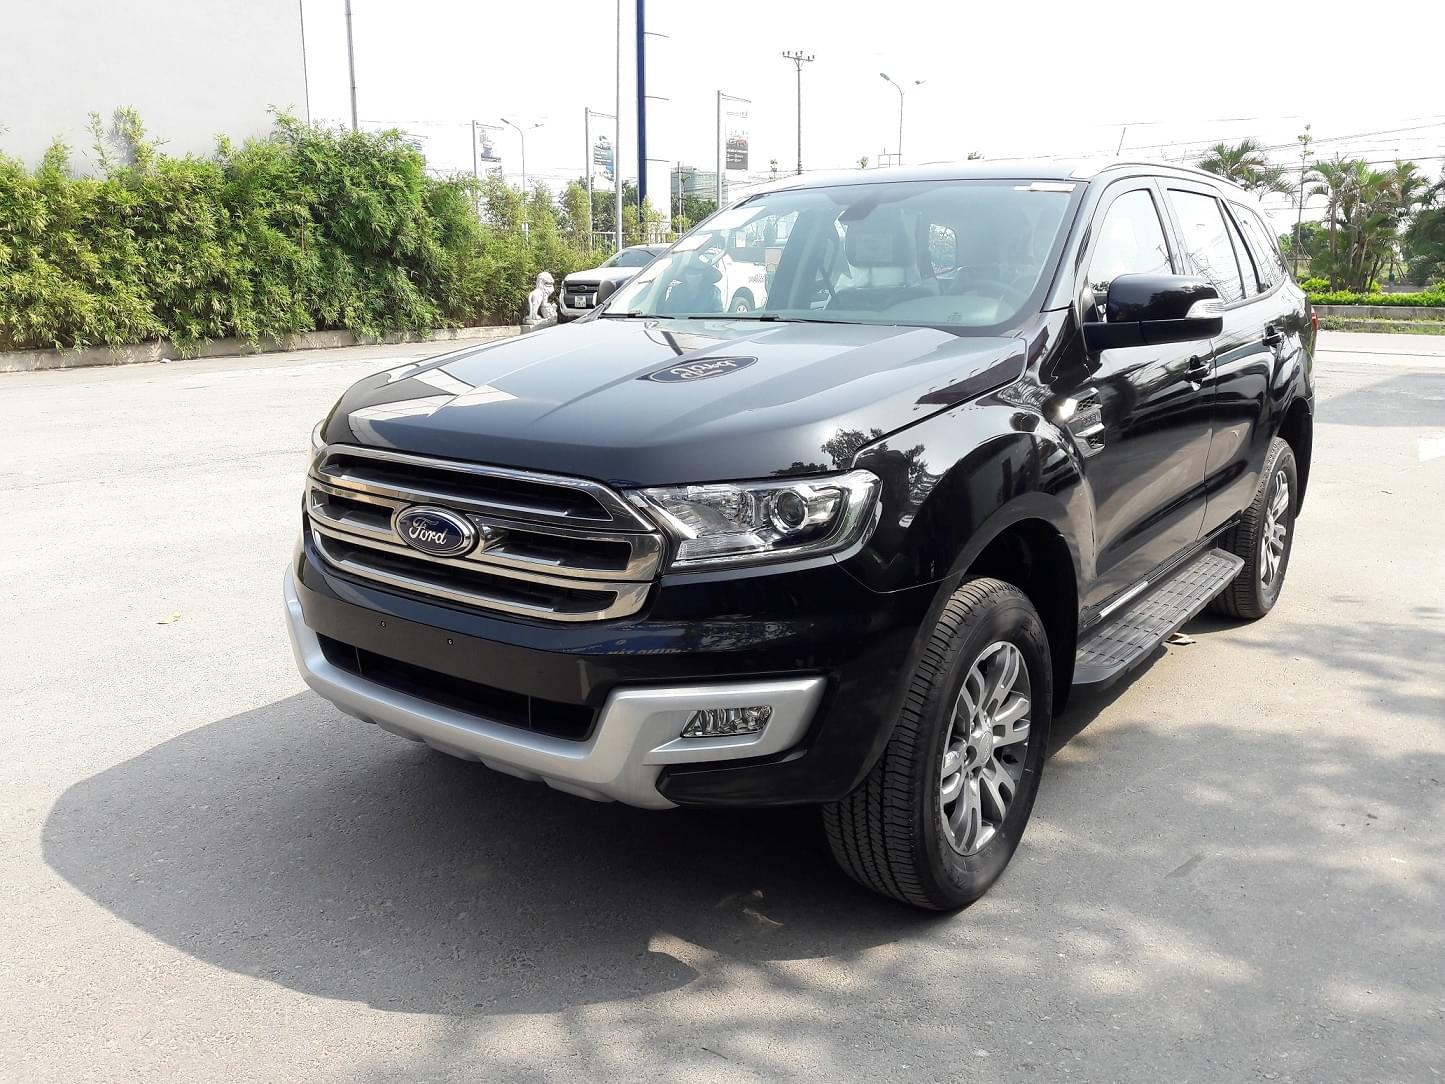 Ford-everest-2.2-trend